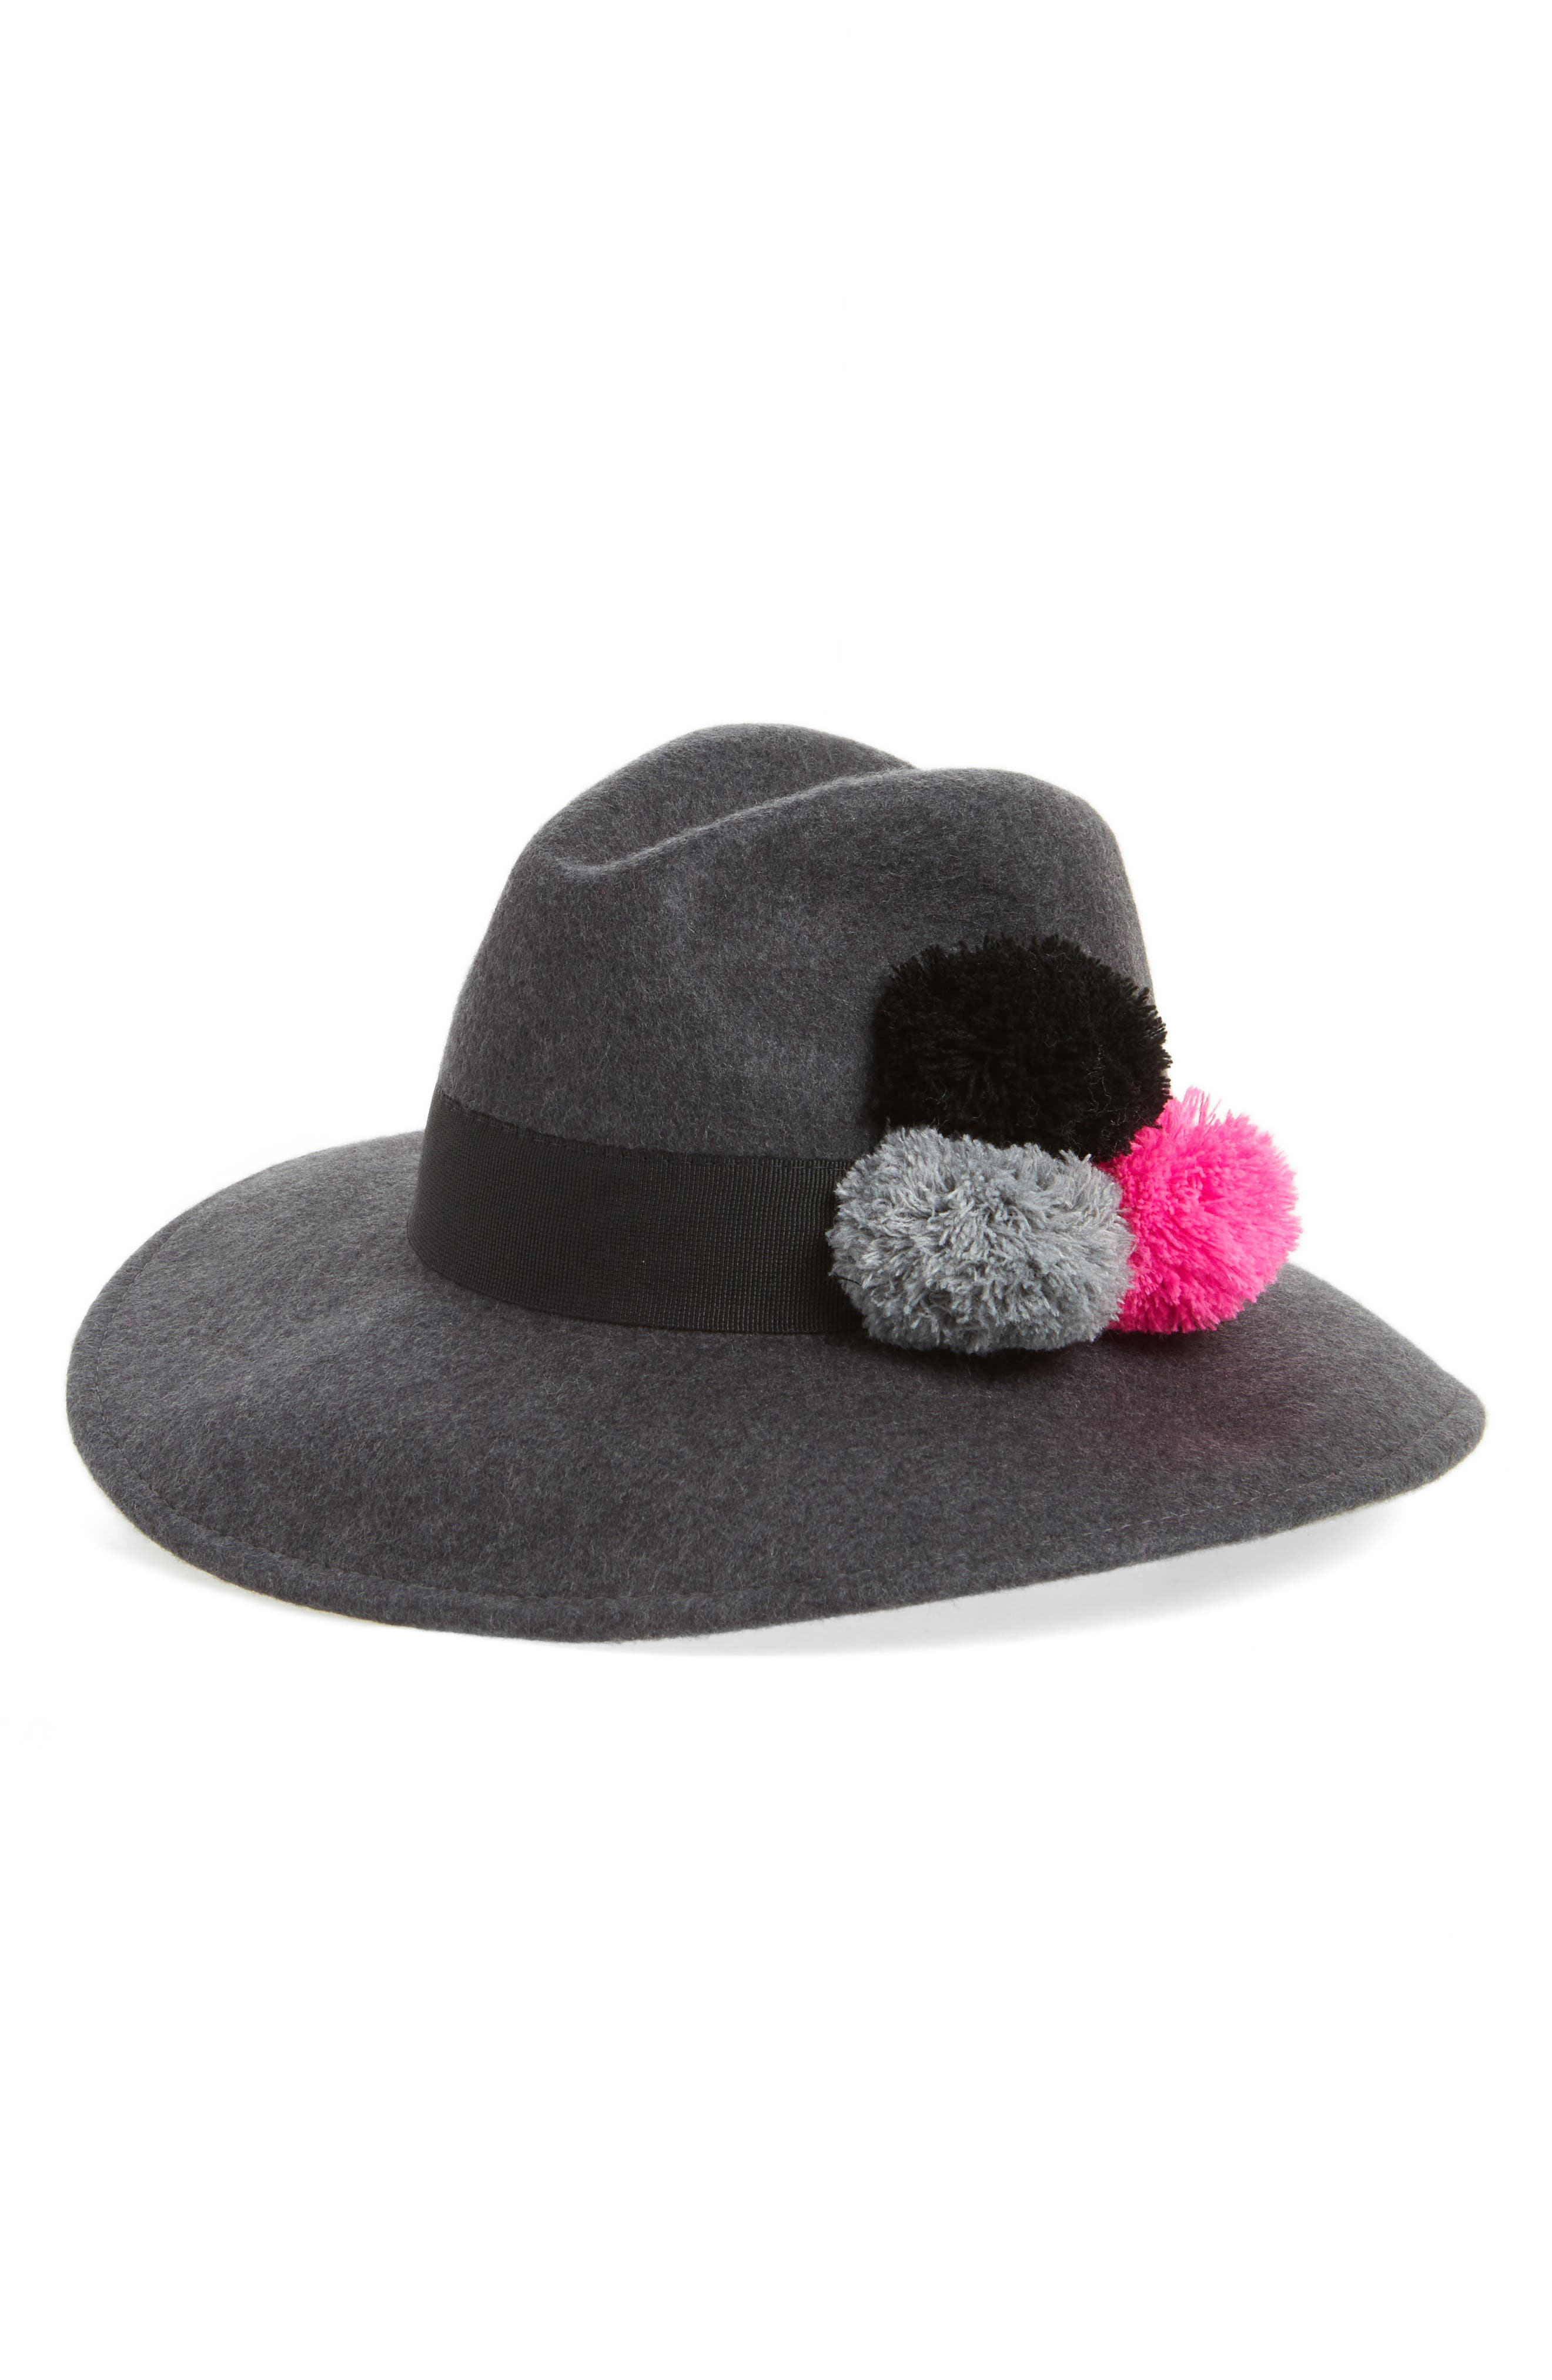 Alternate Image 1 Selected - Helene Berman Pompom Fedora